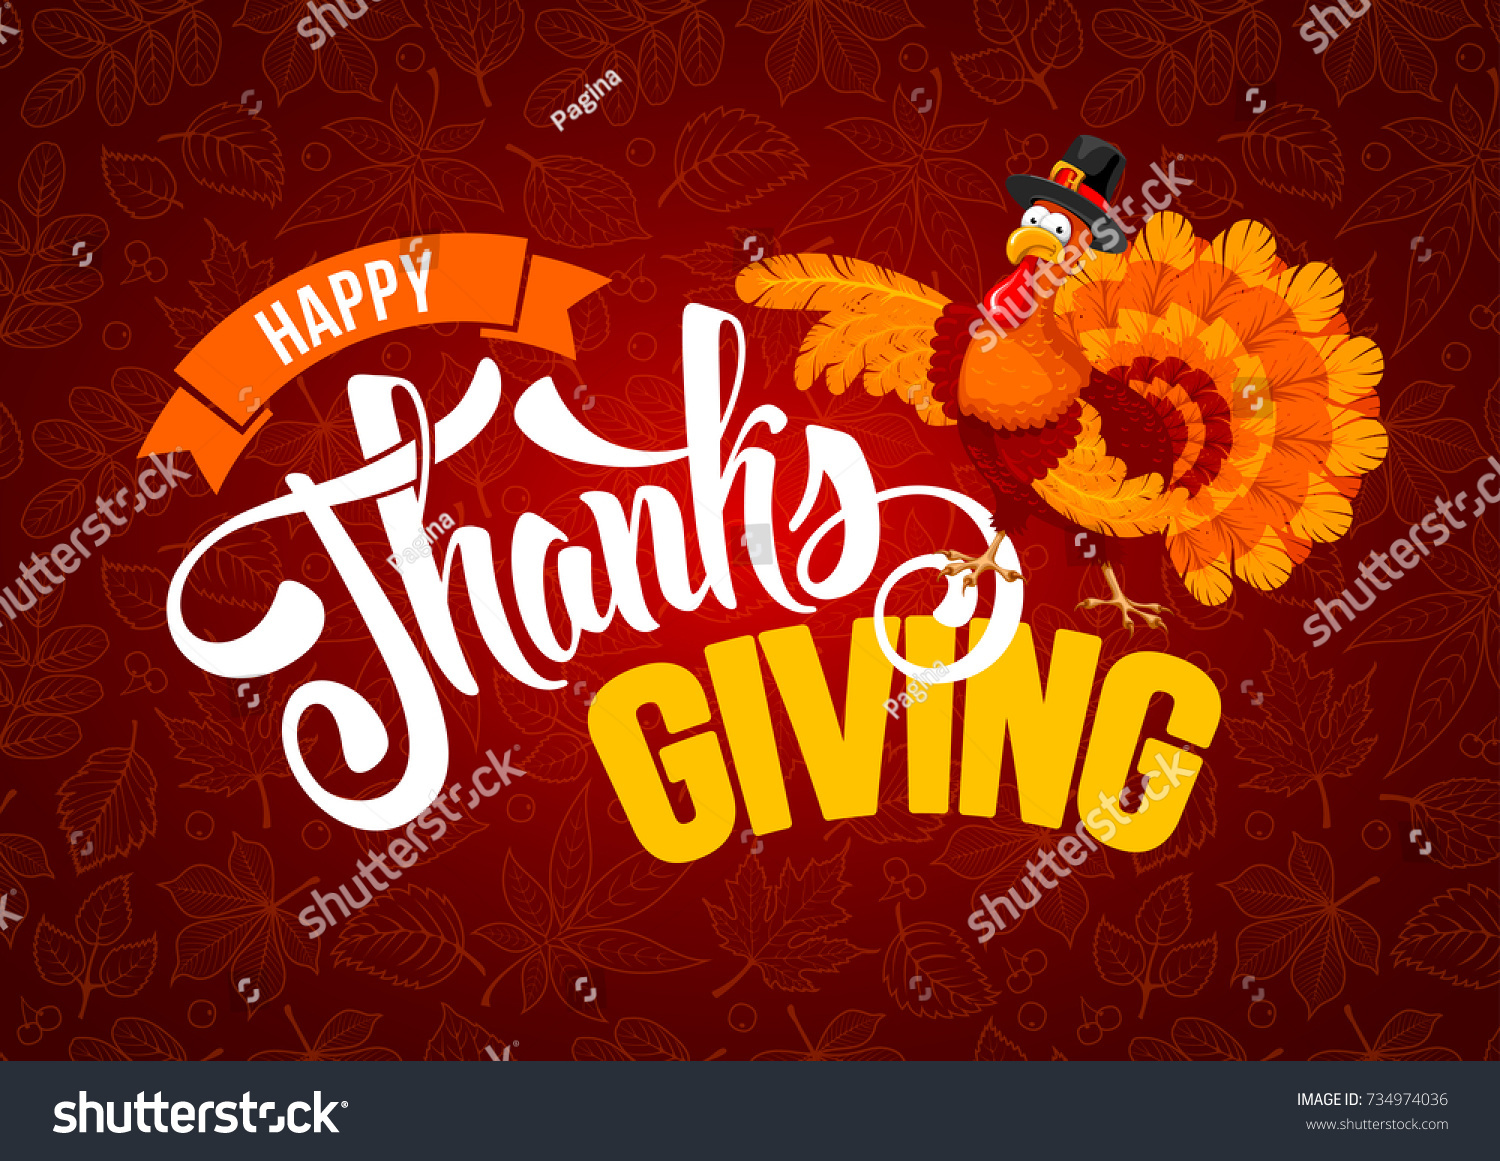 Thanksgiving Greeting Design With Cheerful Turkey And Calligraphy